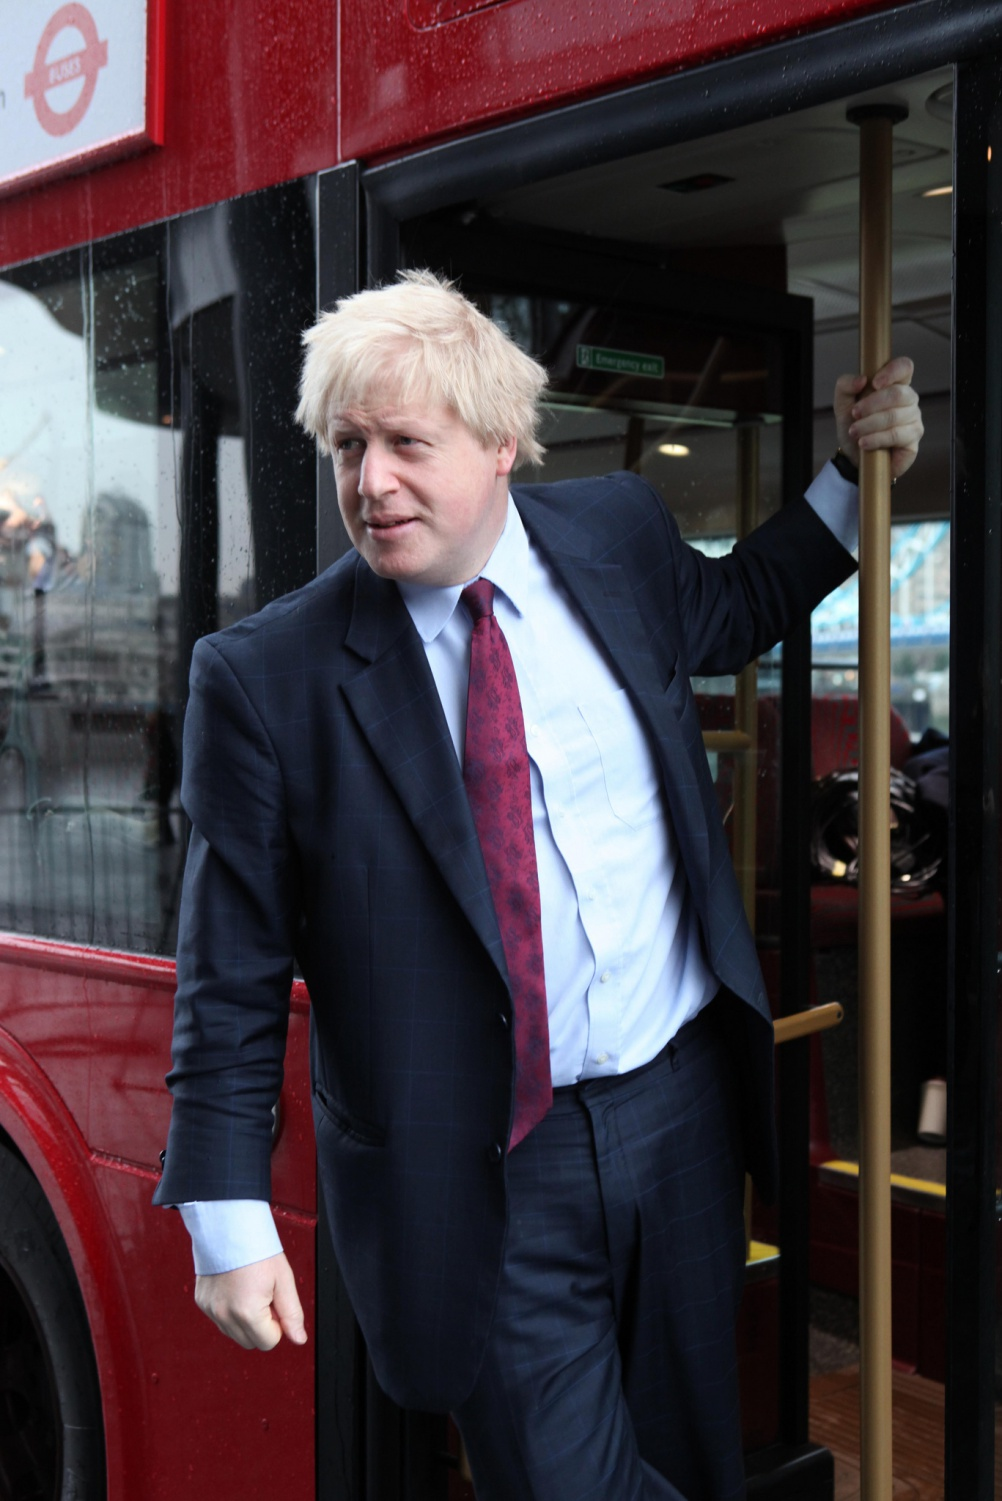 London Mayor Boris Johnson on the rear platform of the New Routemaster. Image by TfL